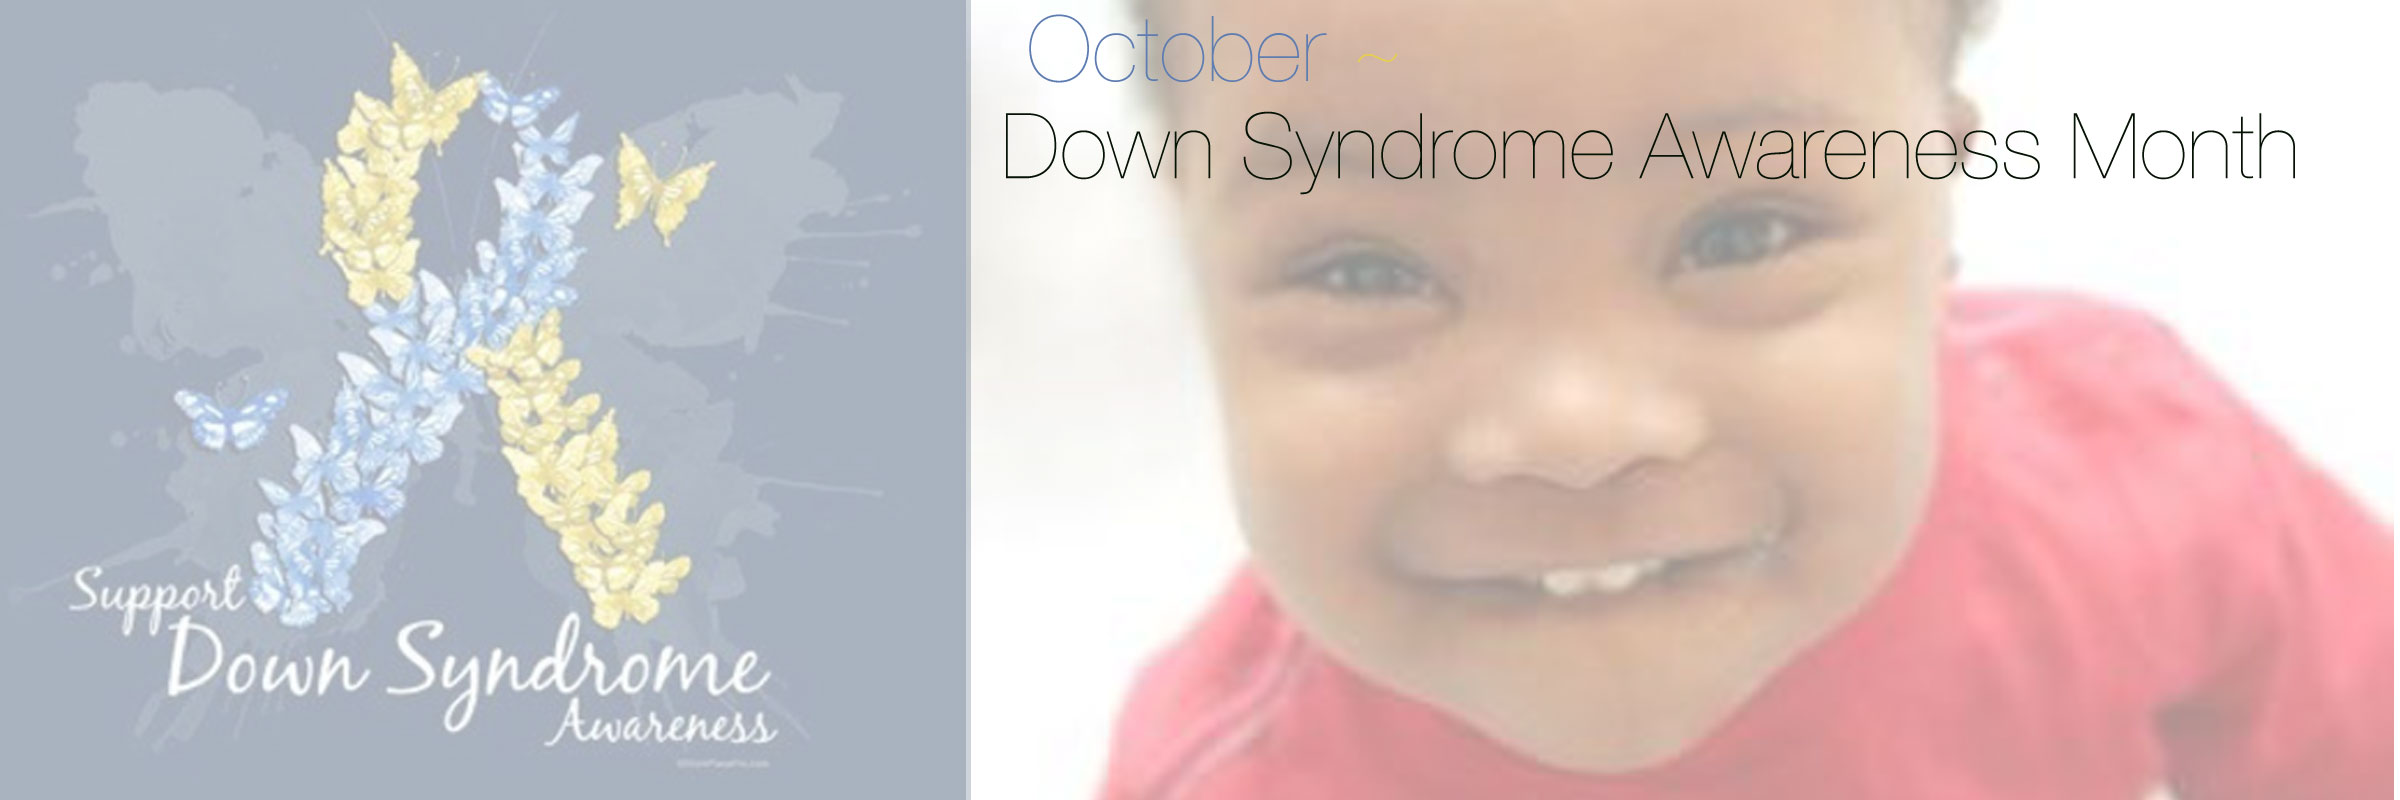 10-down-syndrome